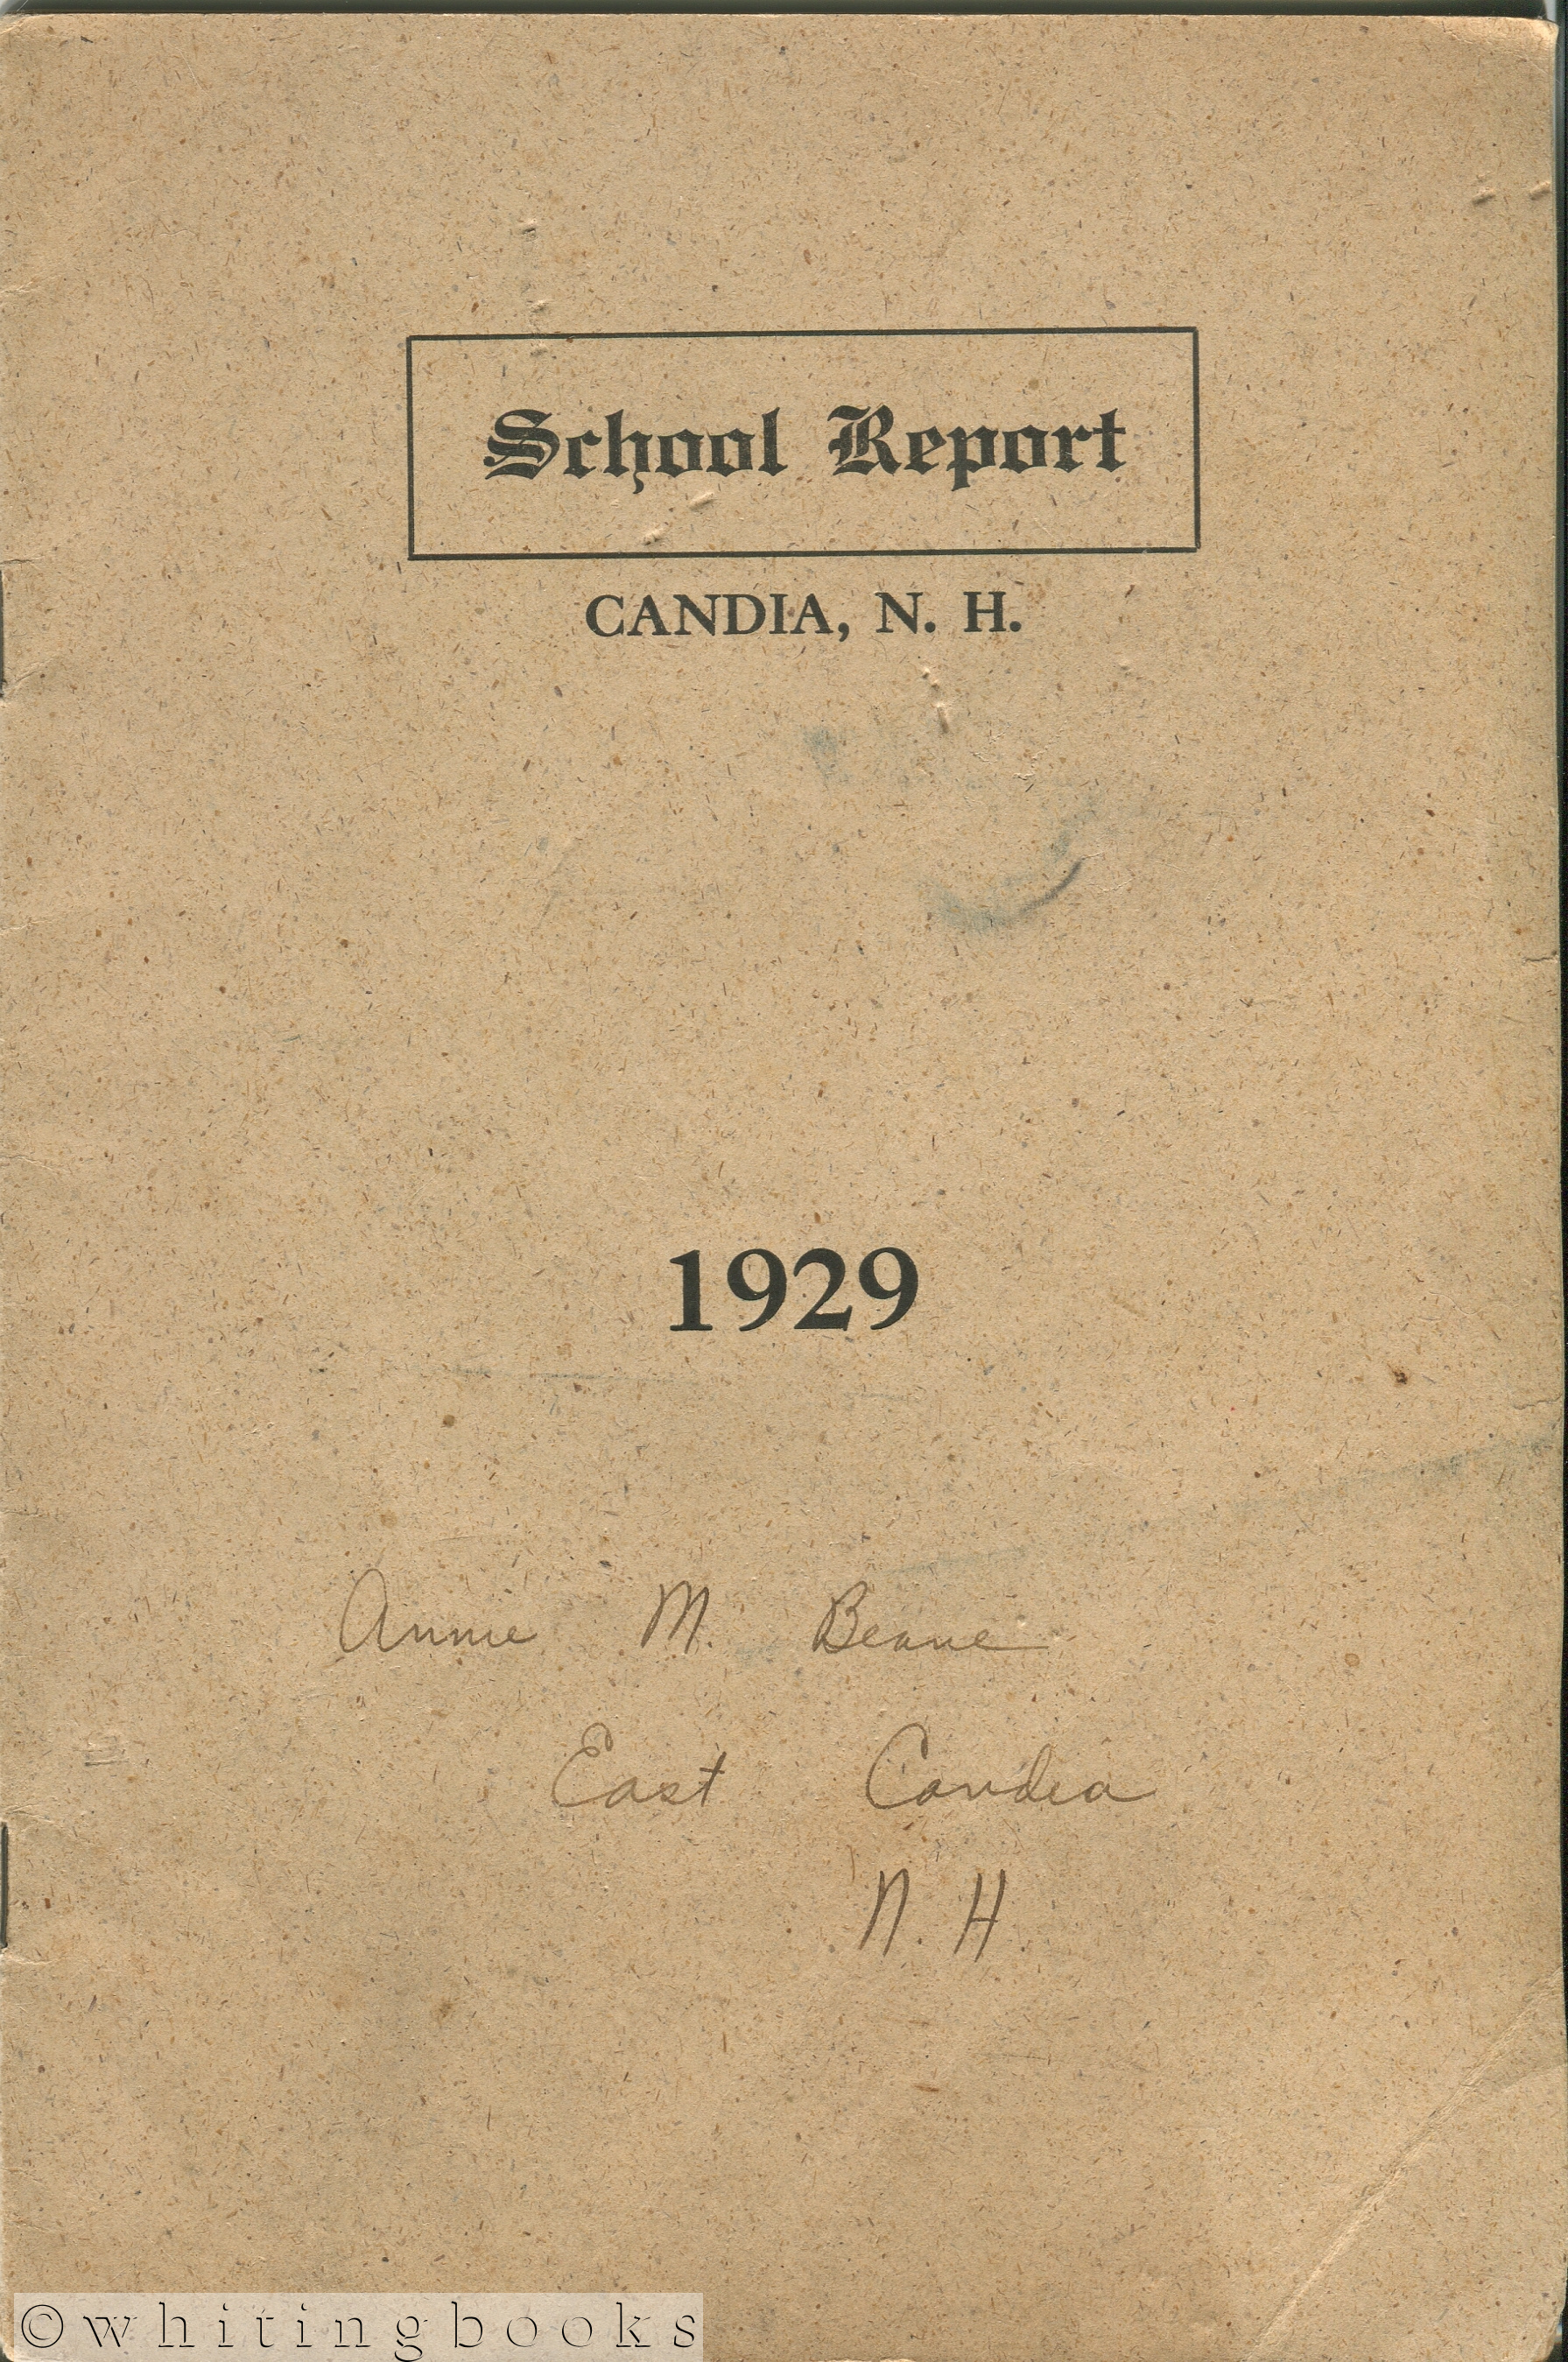 Image for Annual Reports of the School District of Candia, N.H. for the Year Ending June 30, 1929